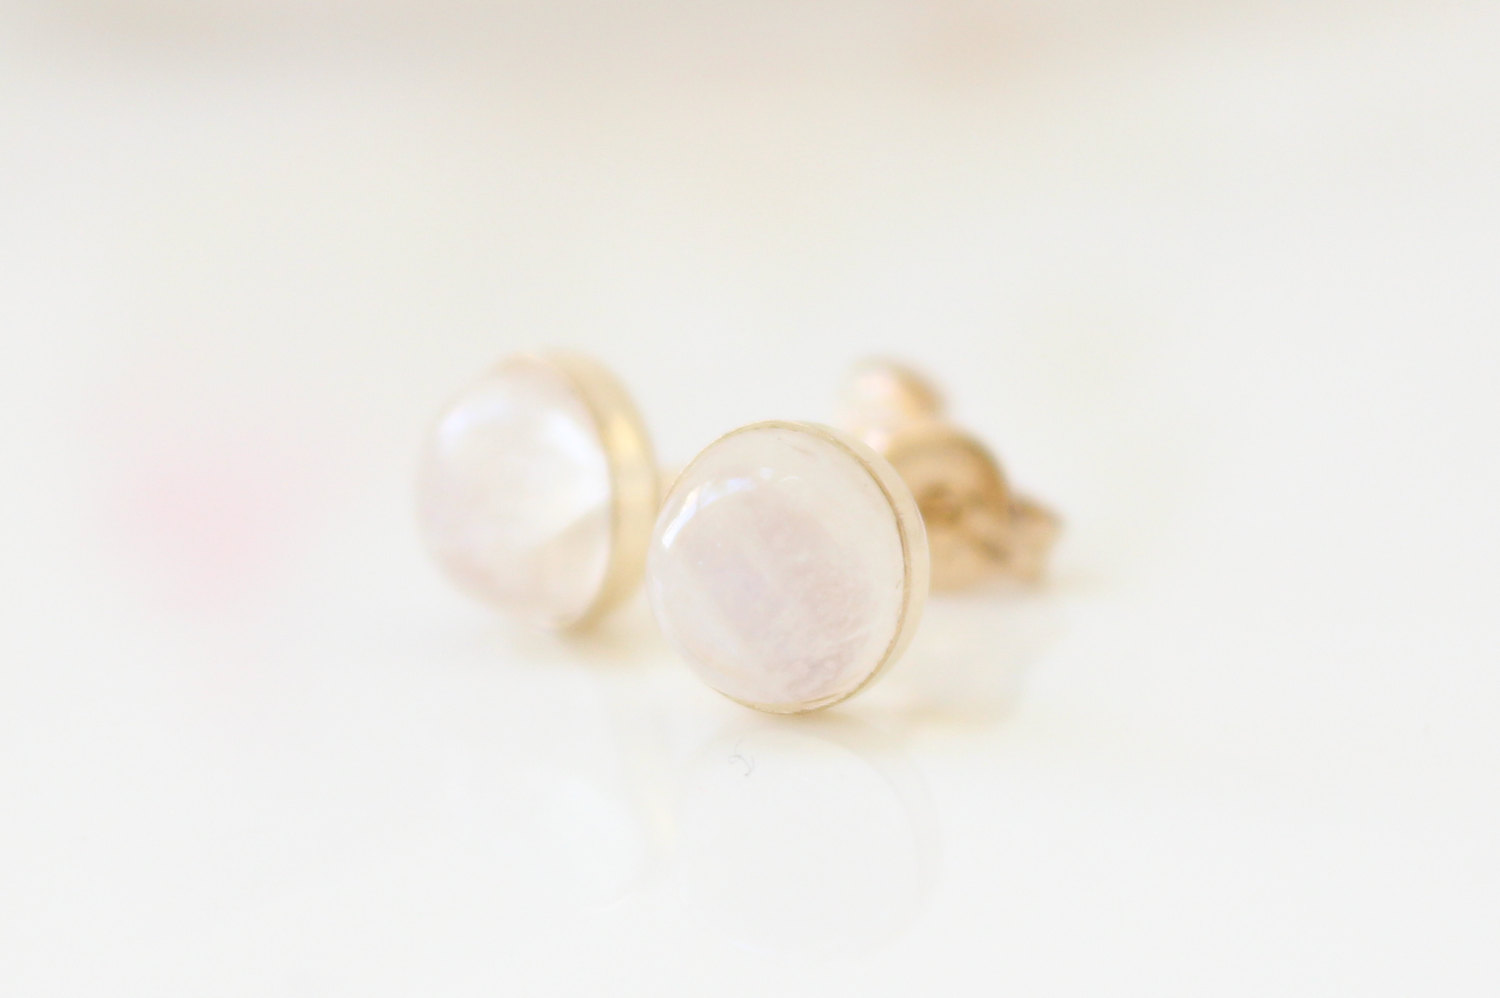 Moonstone stud earrings, Gold post earrings set with rainbow moonstone gemstones